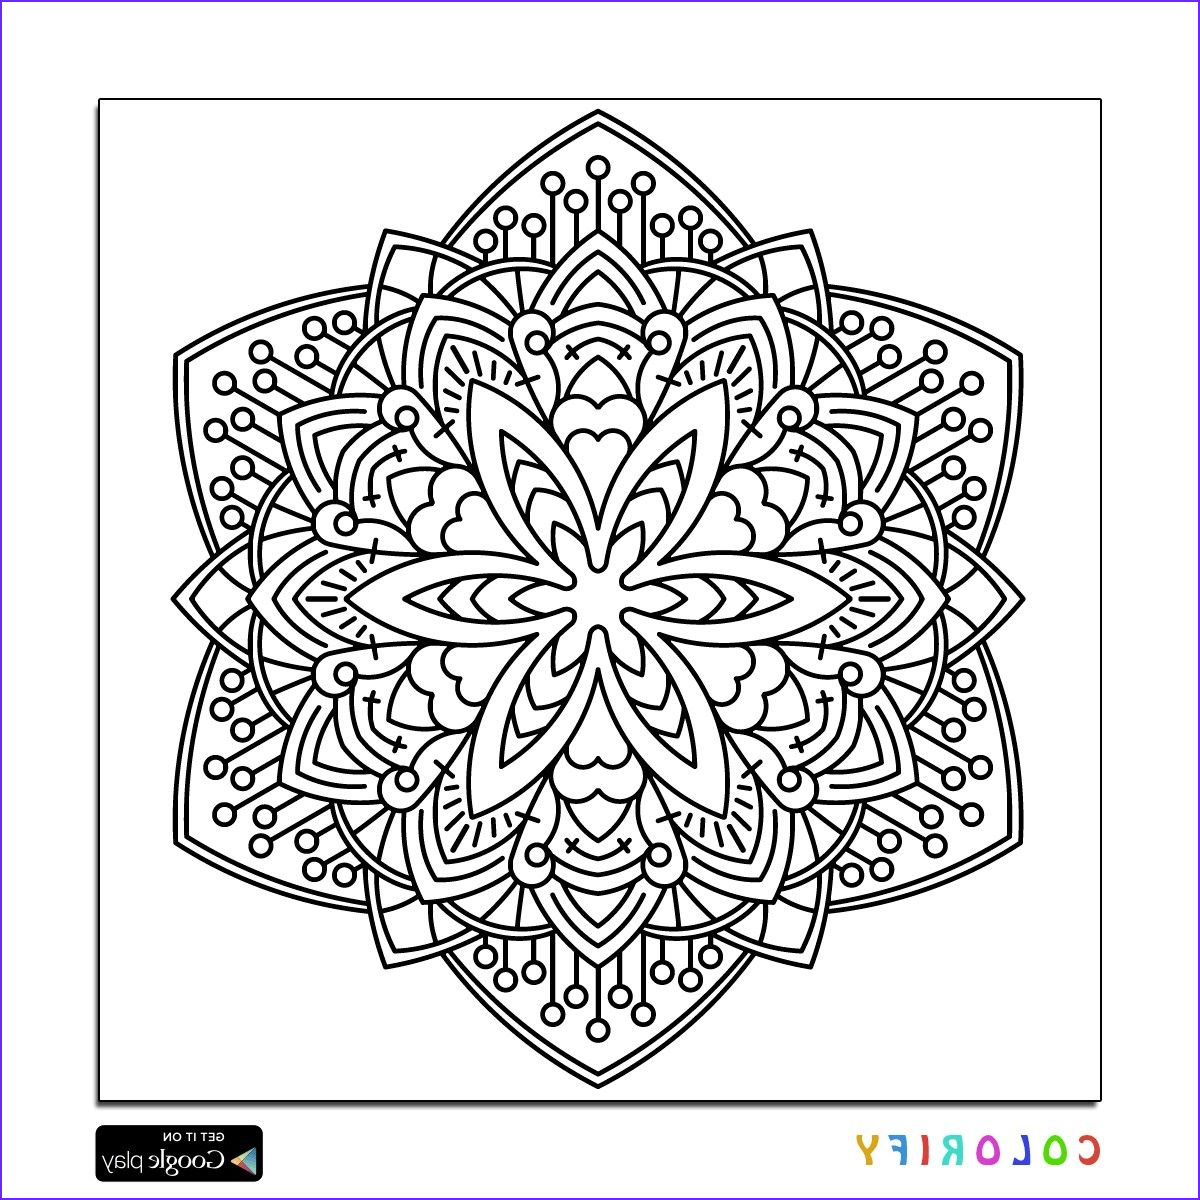 Intricate Coloring Book Beautiful Photography 29 Intricate Mandala Coloring Pages Collection Coloring